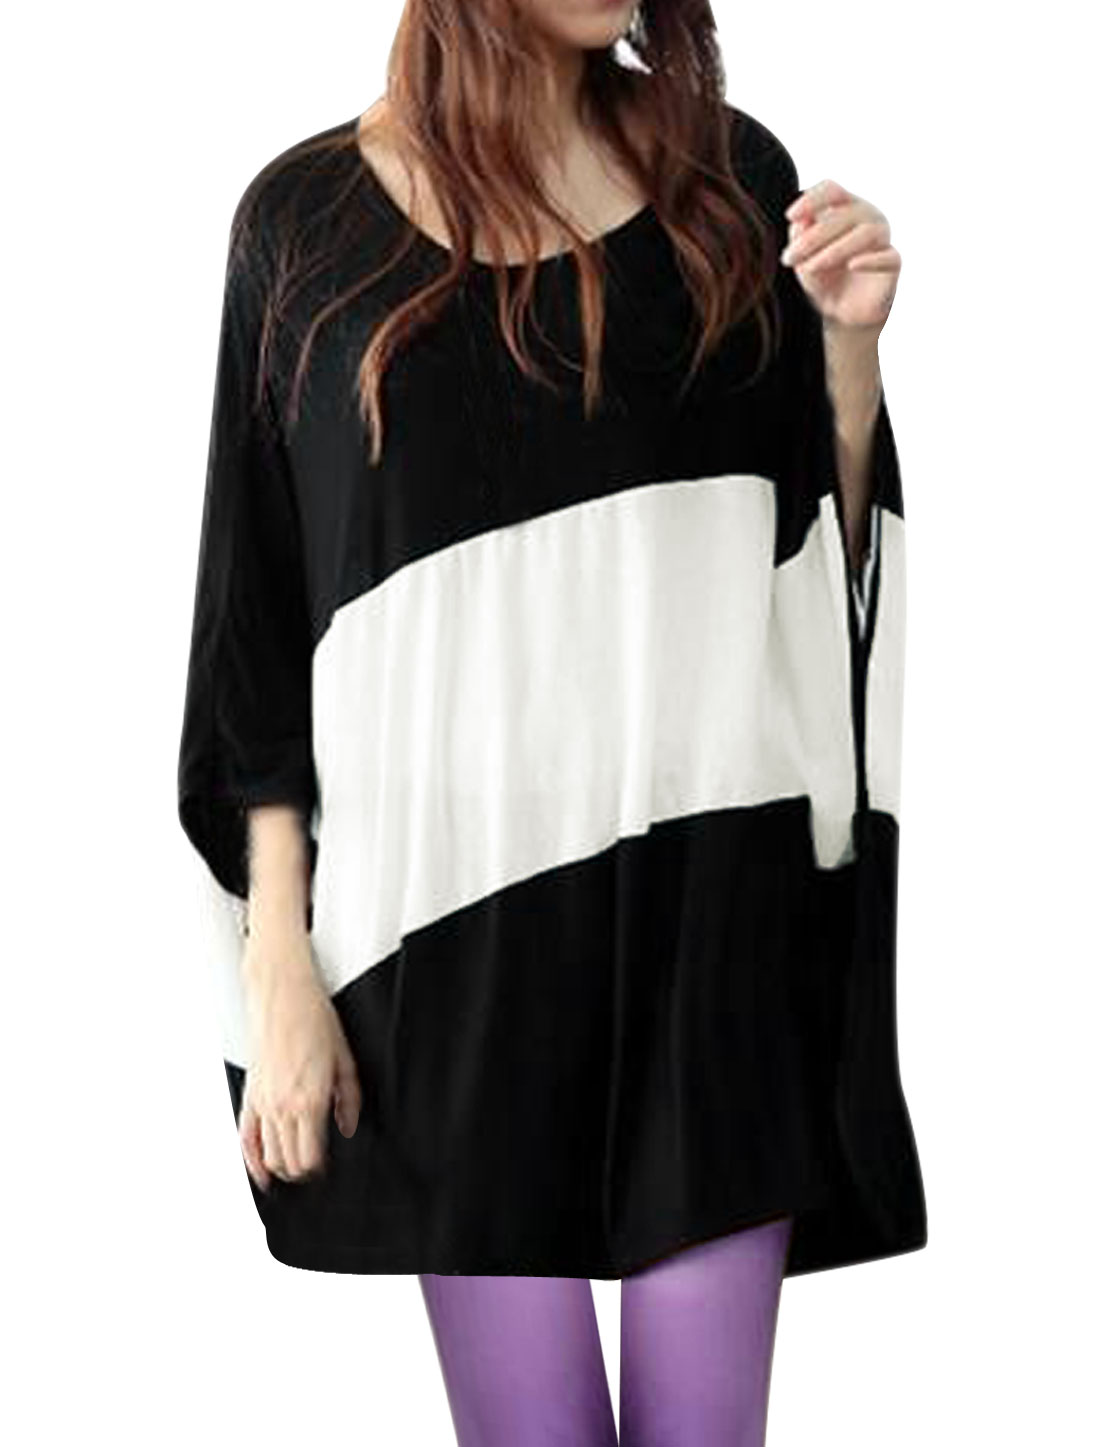 Lady Dolman Sleeve Stretchy Loose Black White Blouse M